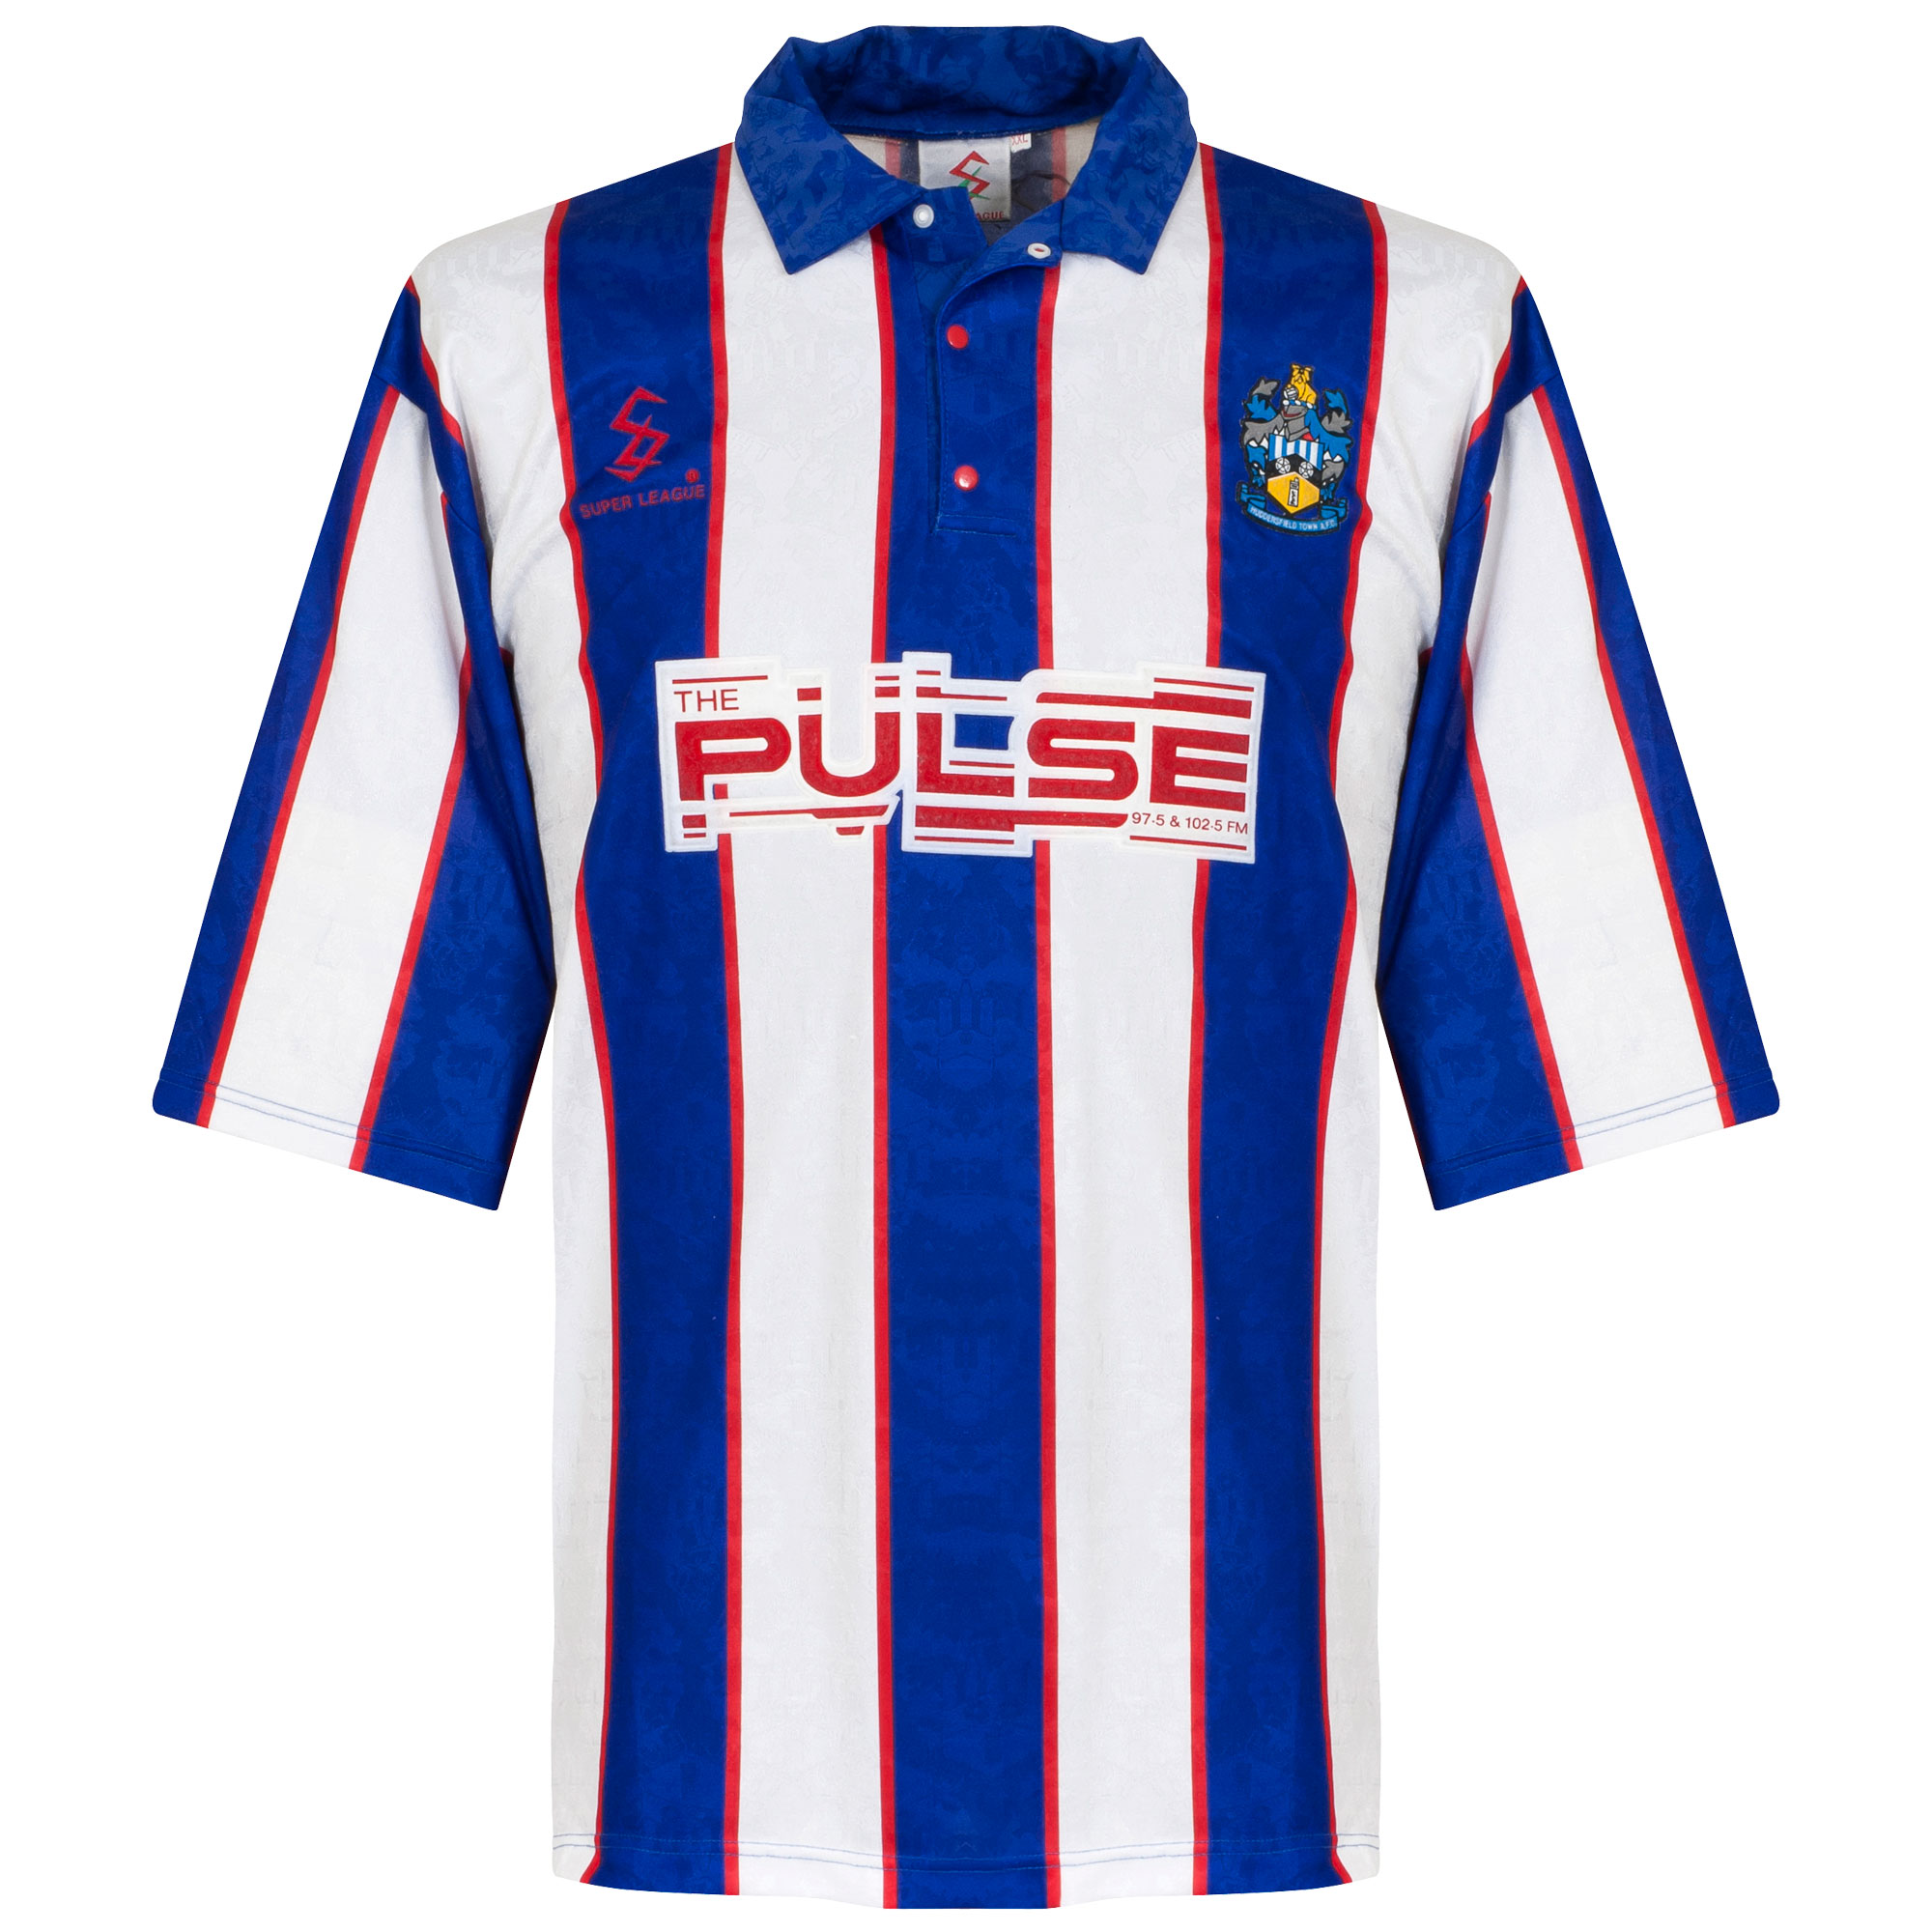 Super League Huddersfield Town 1992-1994 Home Shirt - USED Condition (Great) - Size X